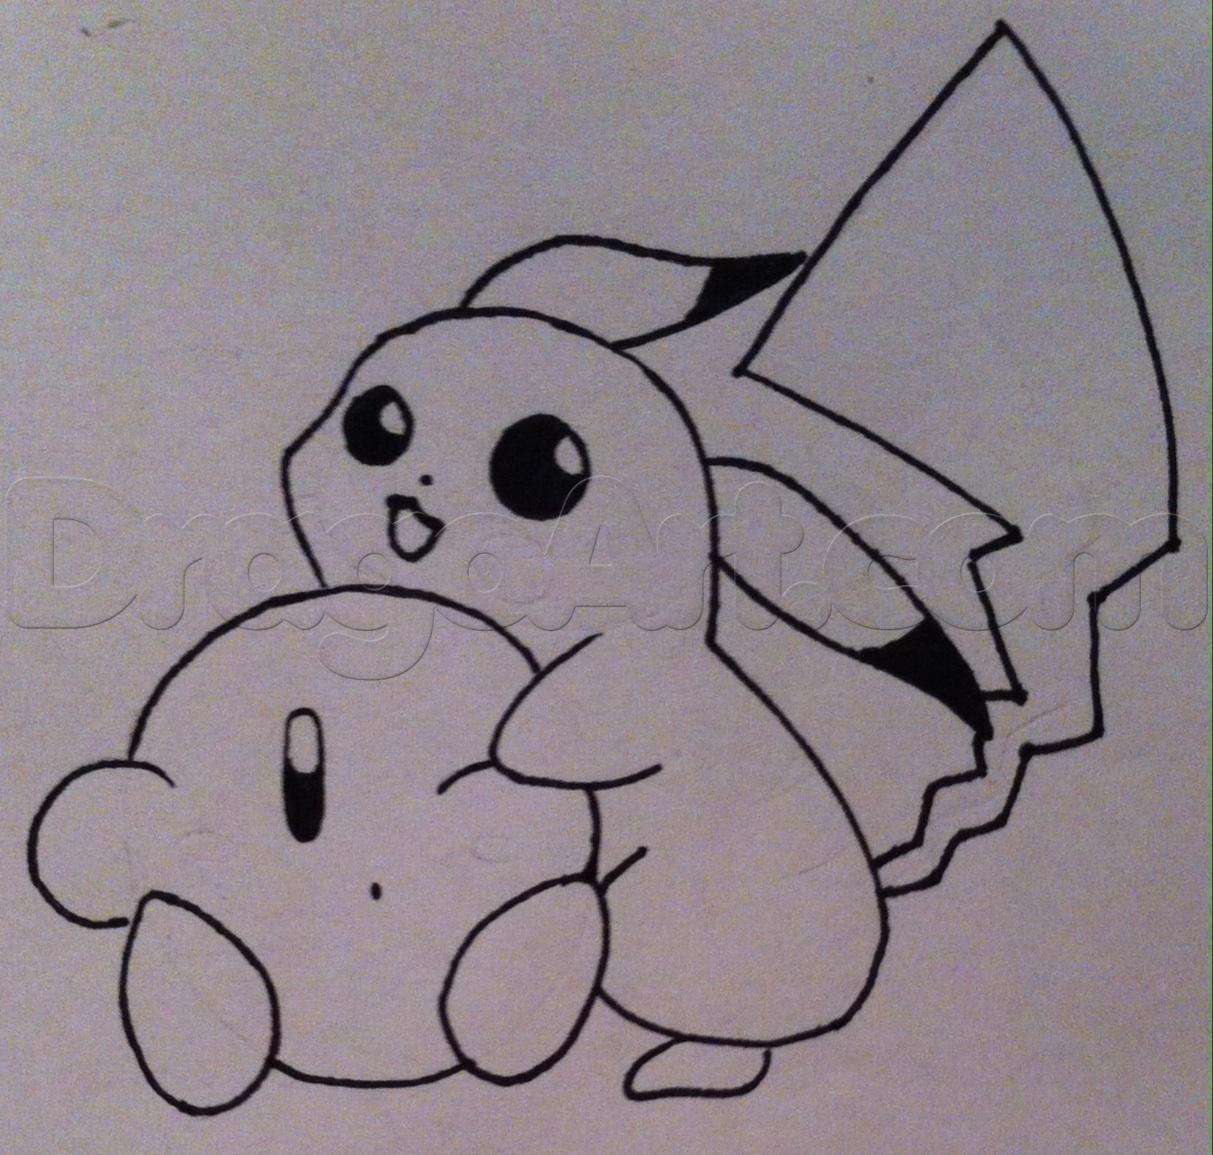 Drawn pikachu kirby  Step Characters step to